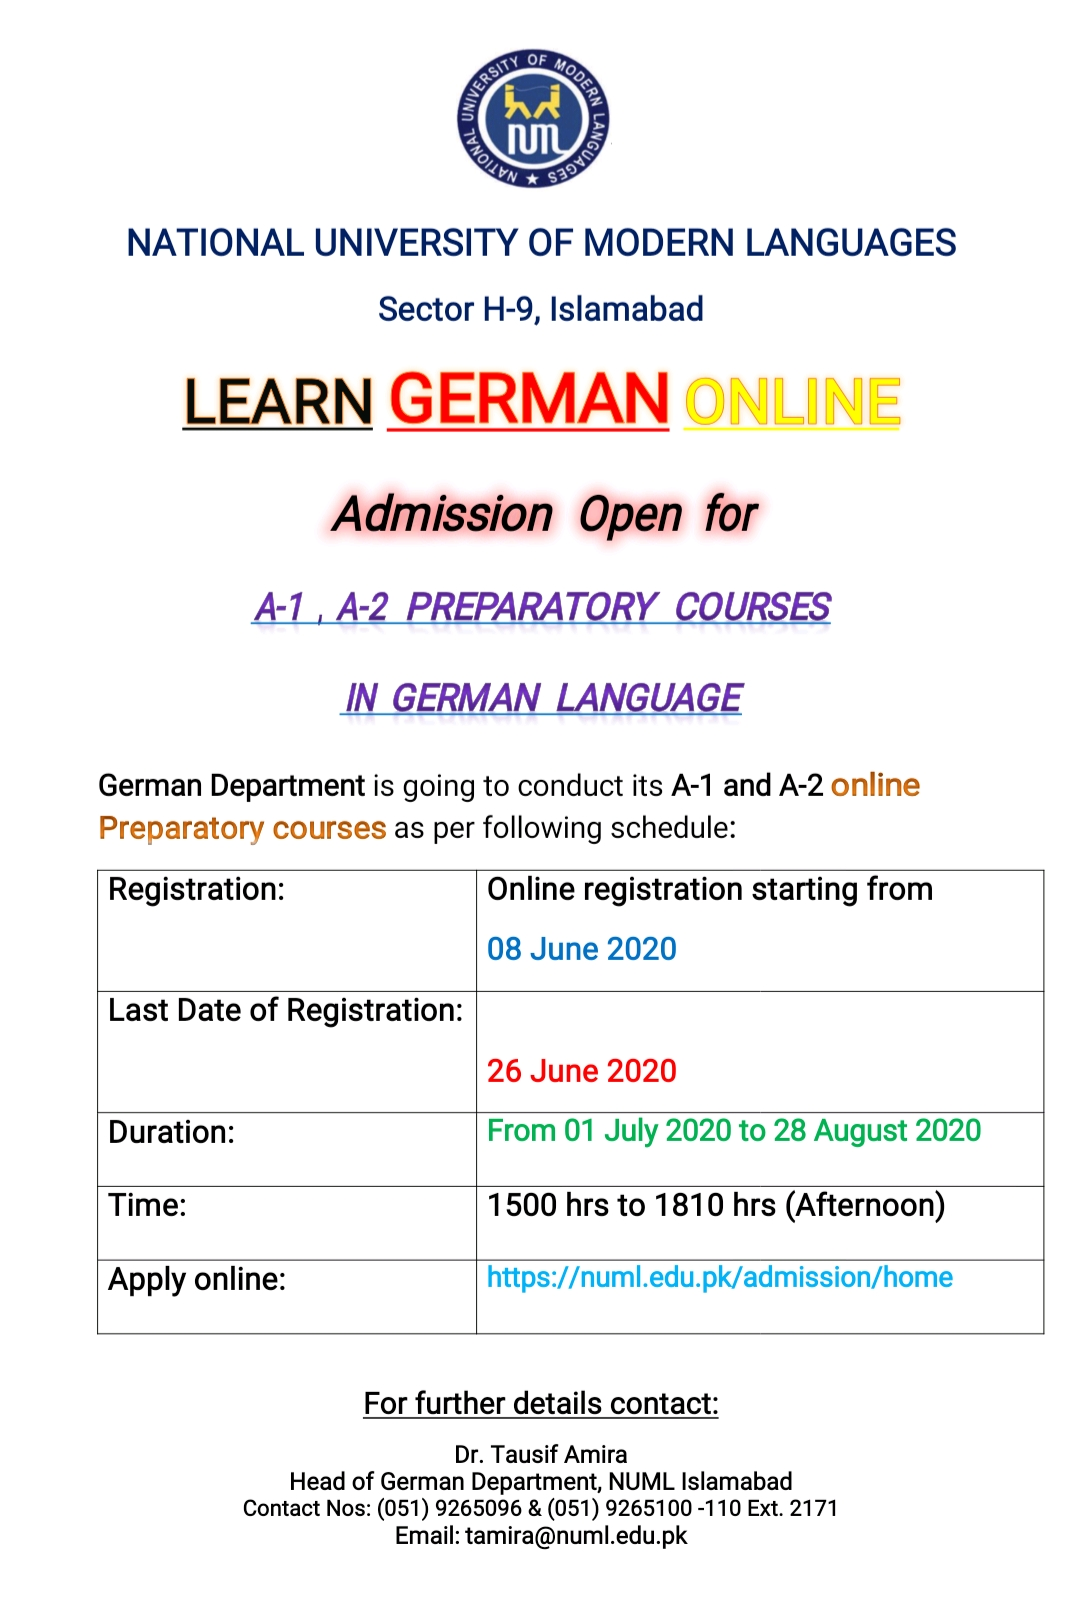 ADMISSION OPEN For A1, A2  Online Preparatory courses in German Language